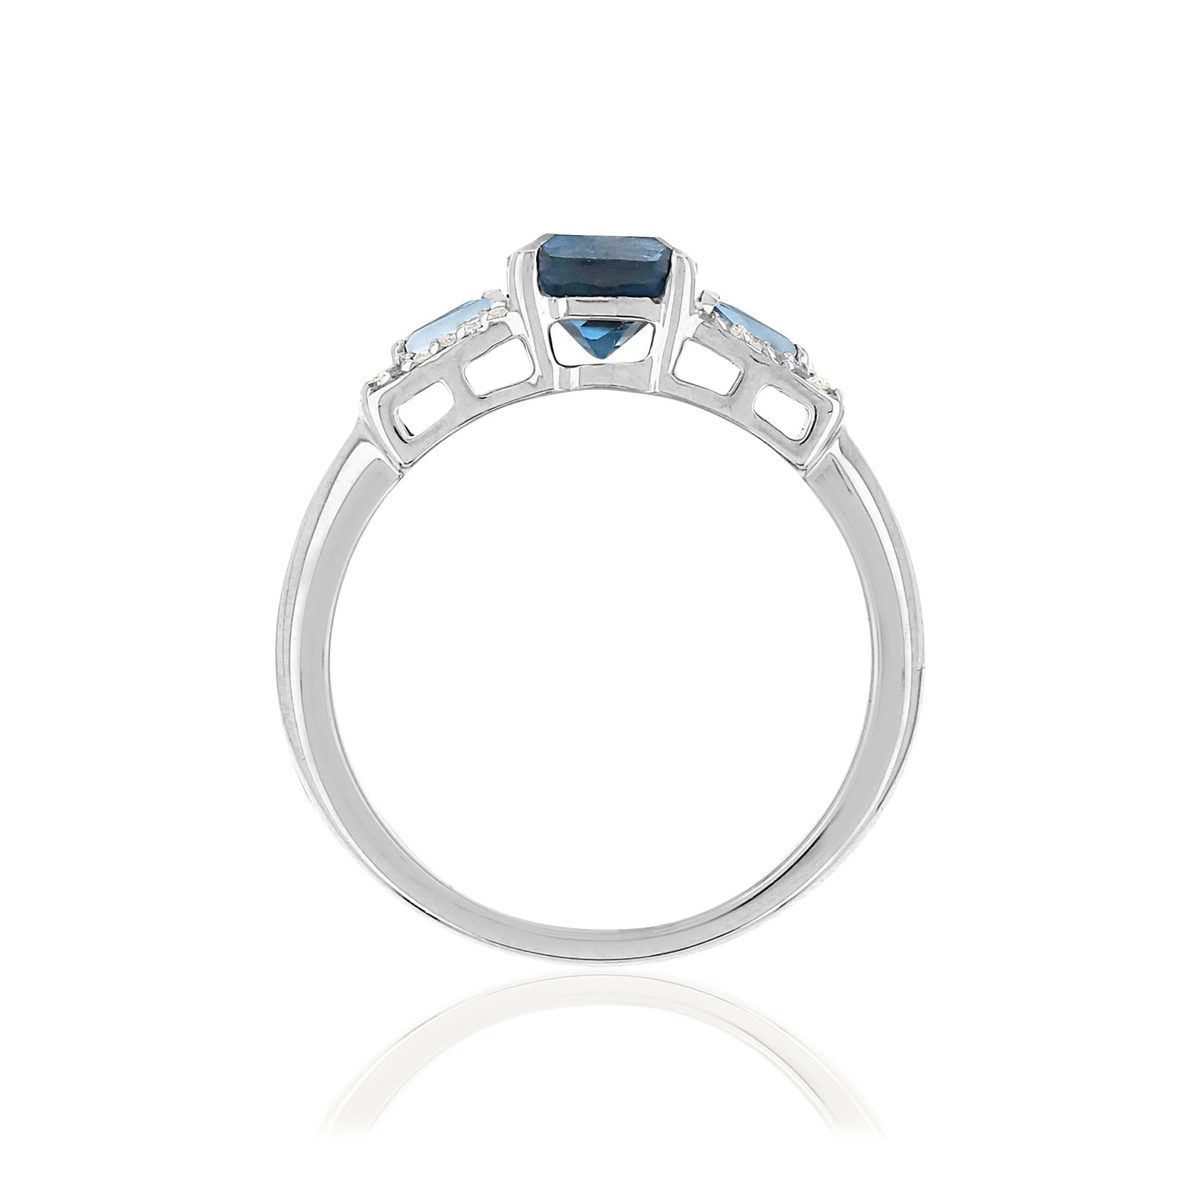 Bague MATY Or 375 blanc Topazes Diamants - vue V2